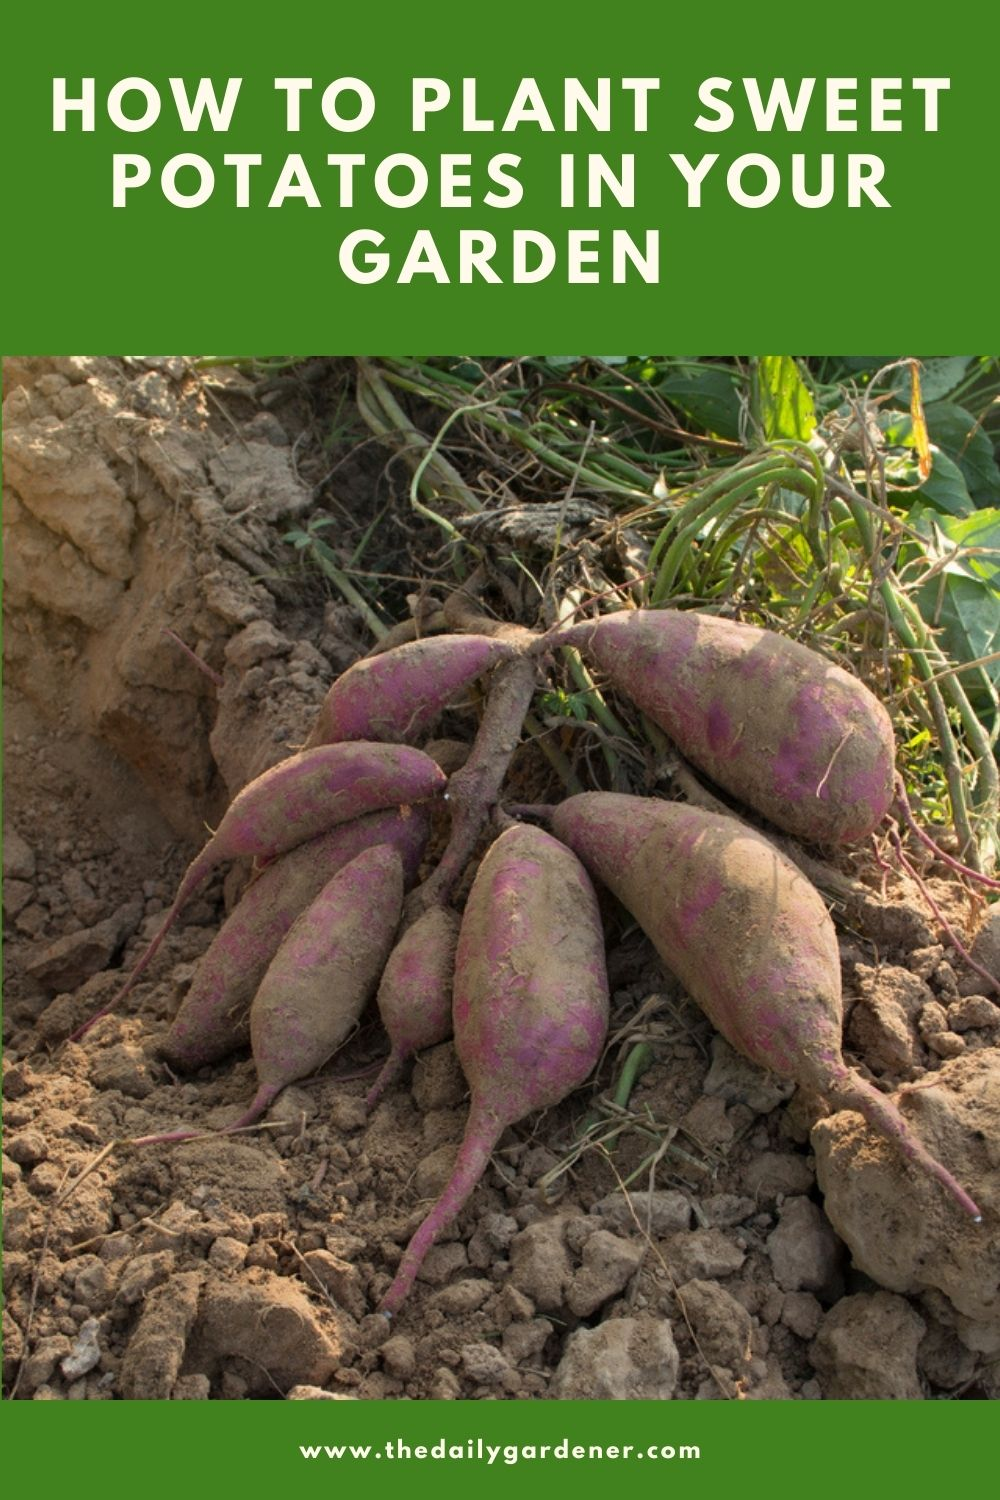 How to Plant Sweet Potatoes in Your Garden (Tricks to Care!) 1